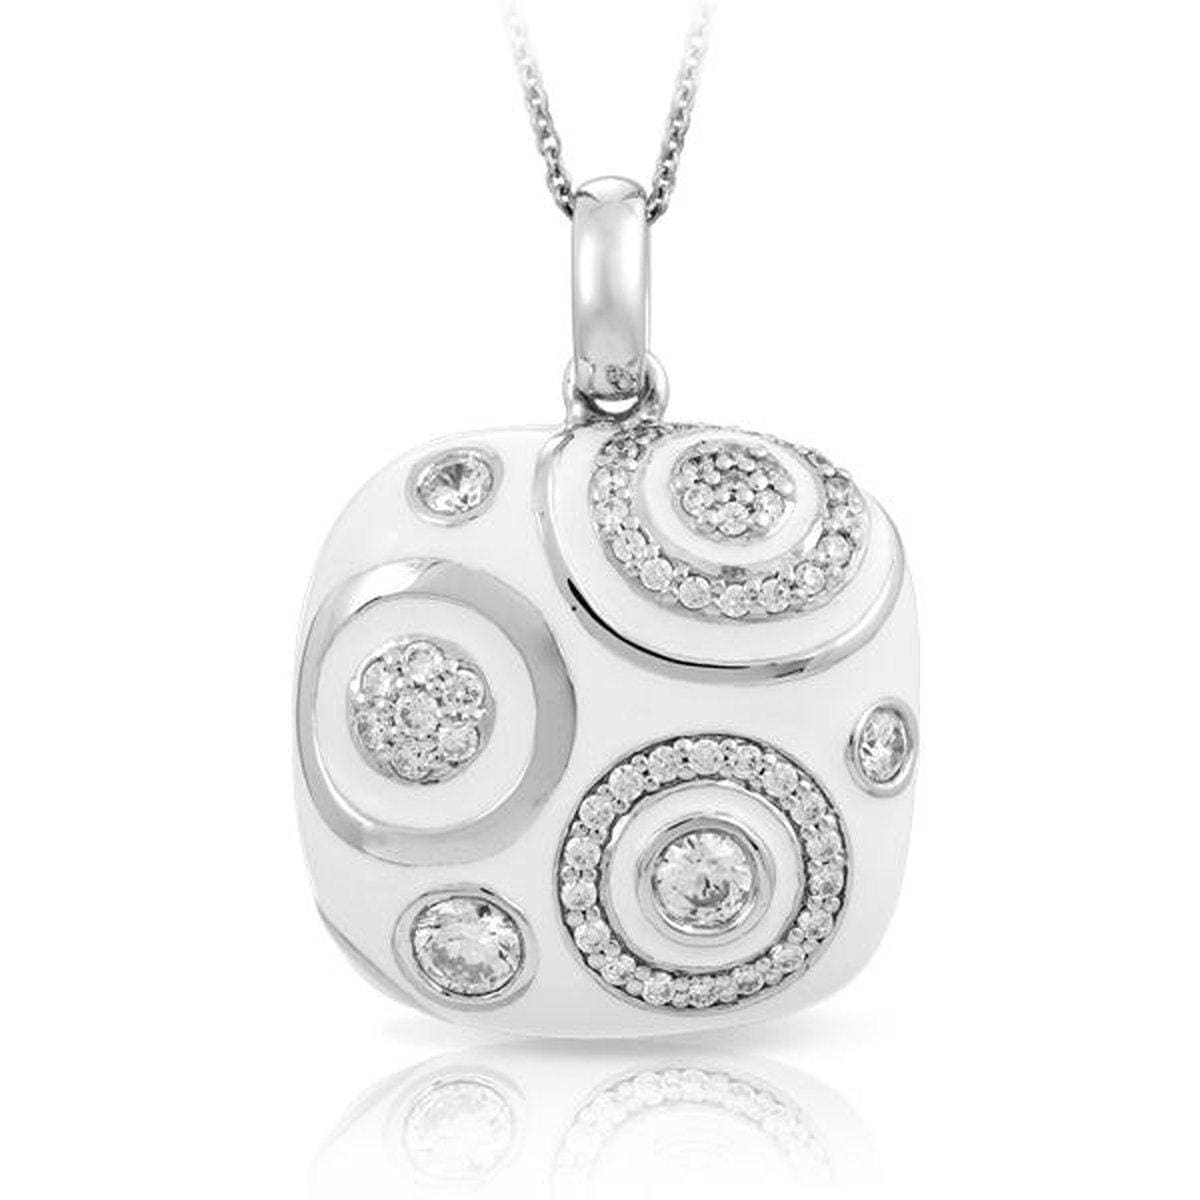 Galaxy White Pendant-Belle Etoile-Renee Taylor Gallery